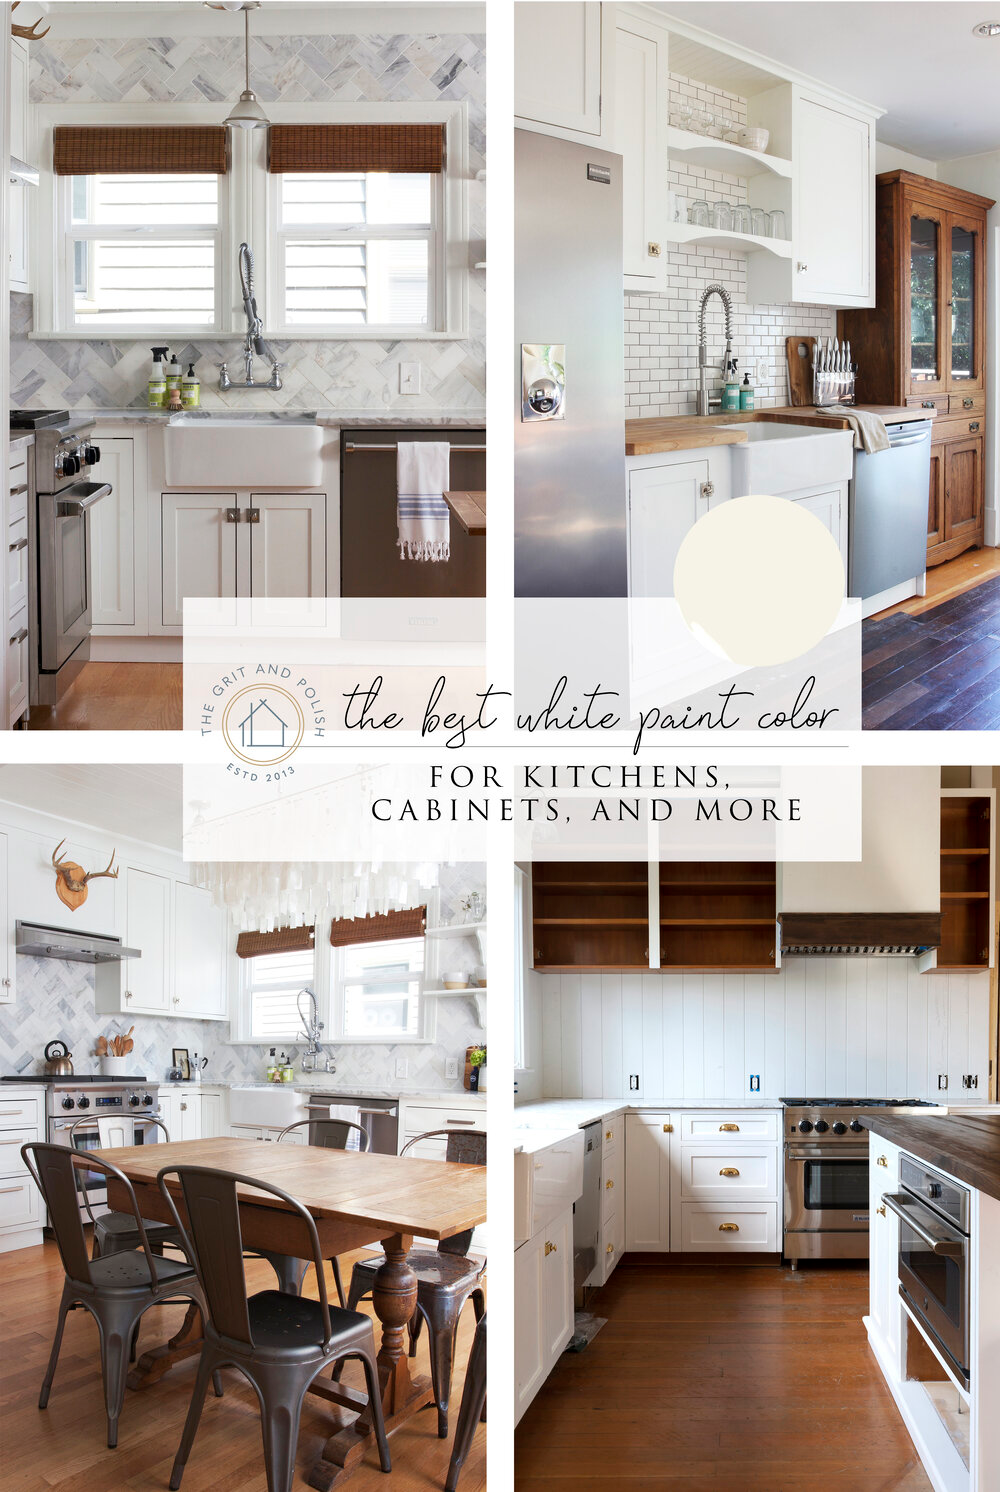 Our Favorite White Paint Color For Kitchens Cabinets The Grit And Polish White Kitchen Paint Kitchen Paint Colors White Paint Colors